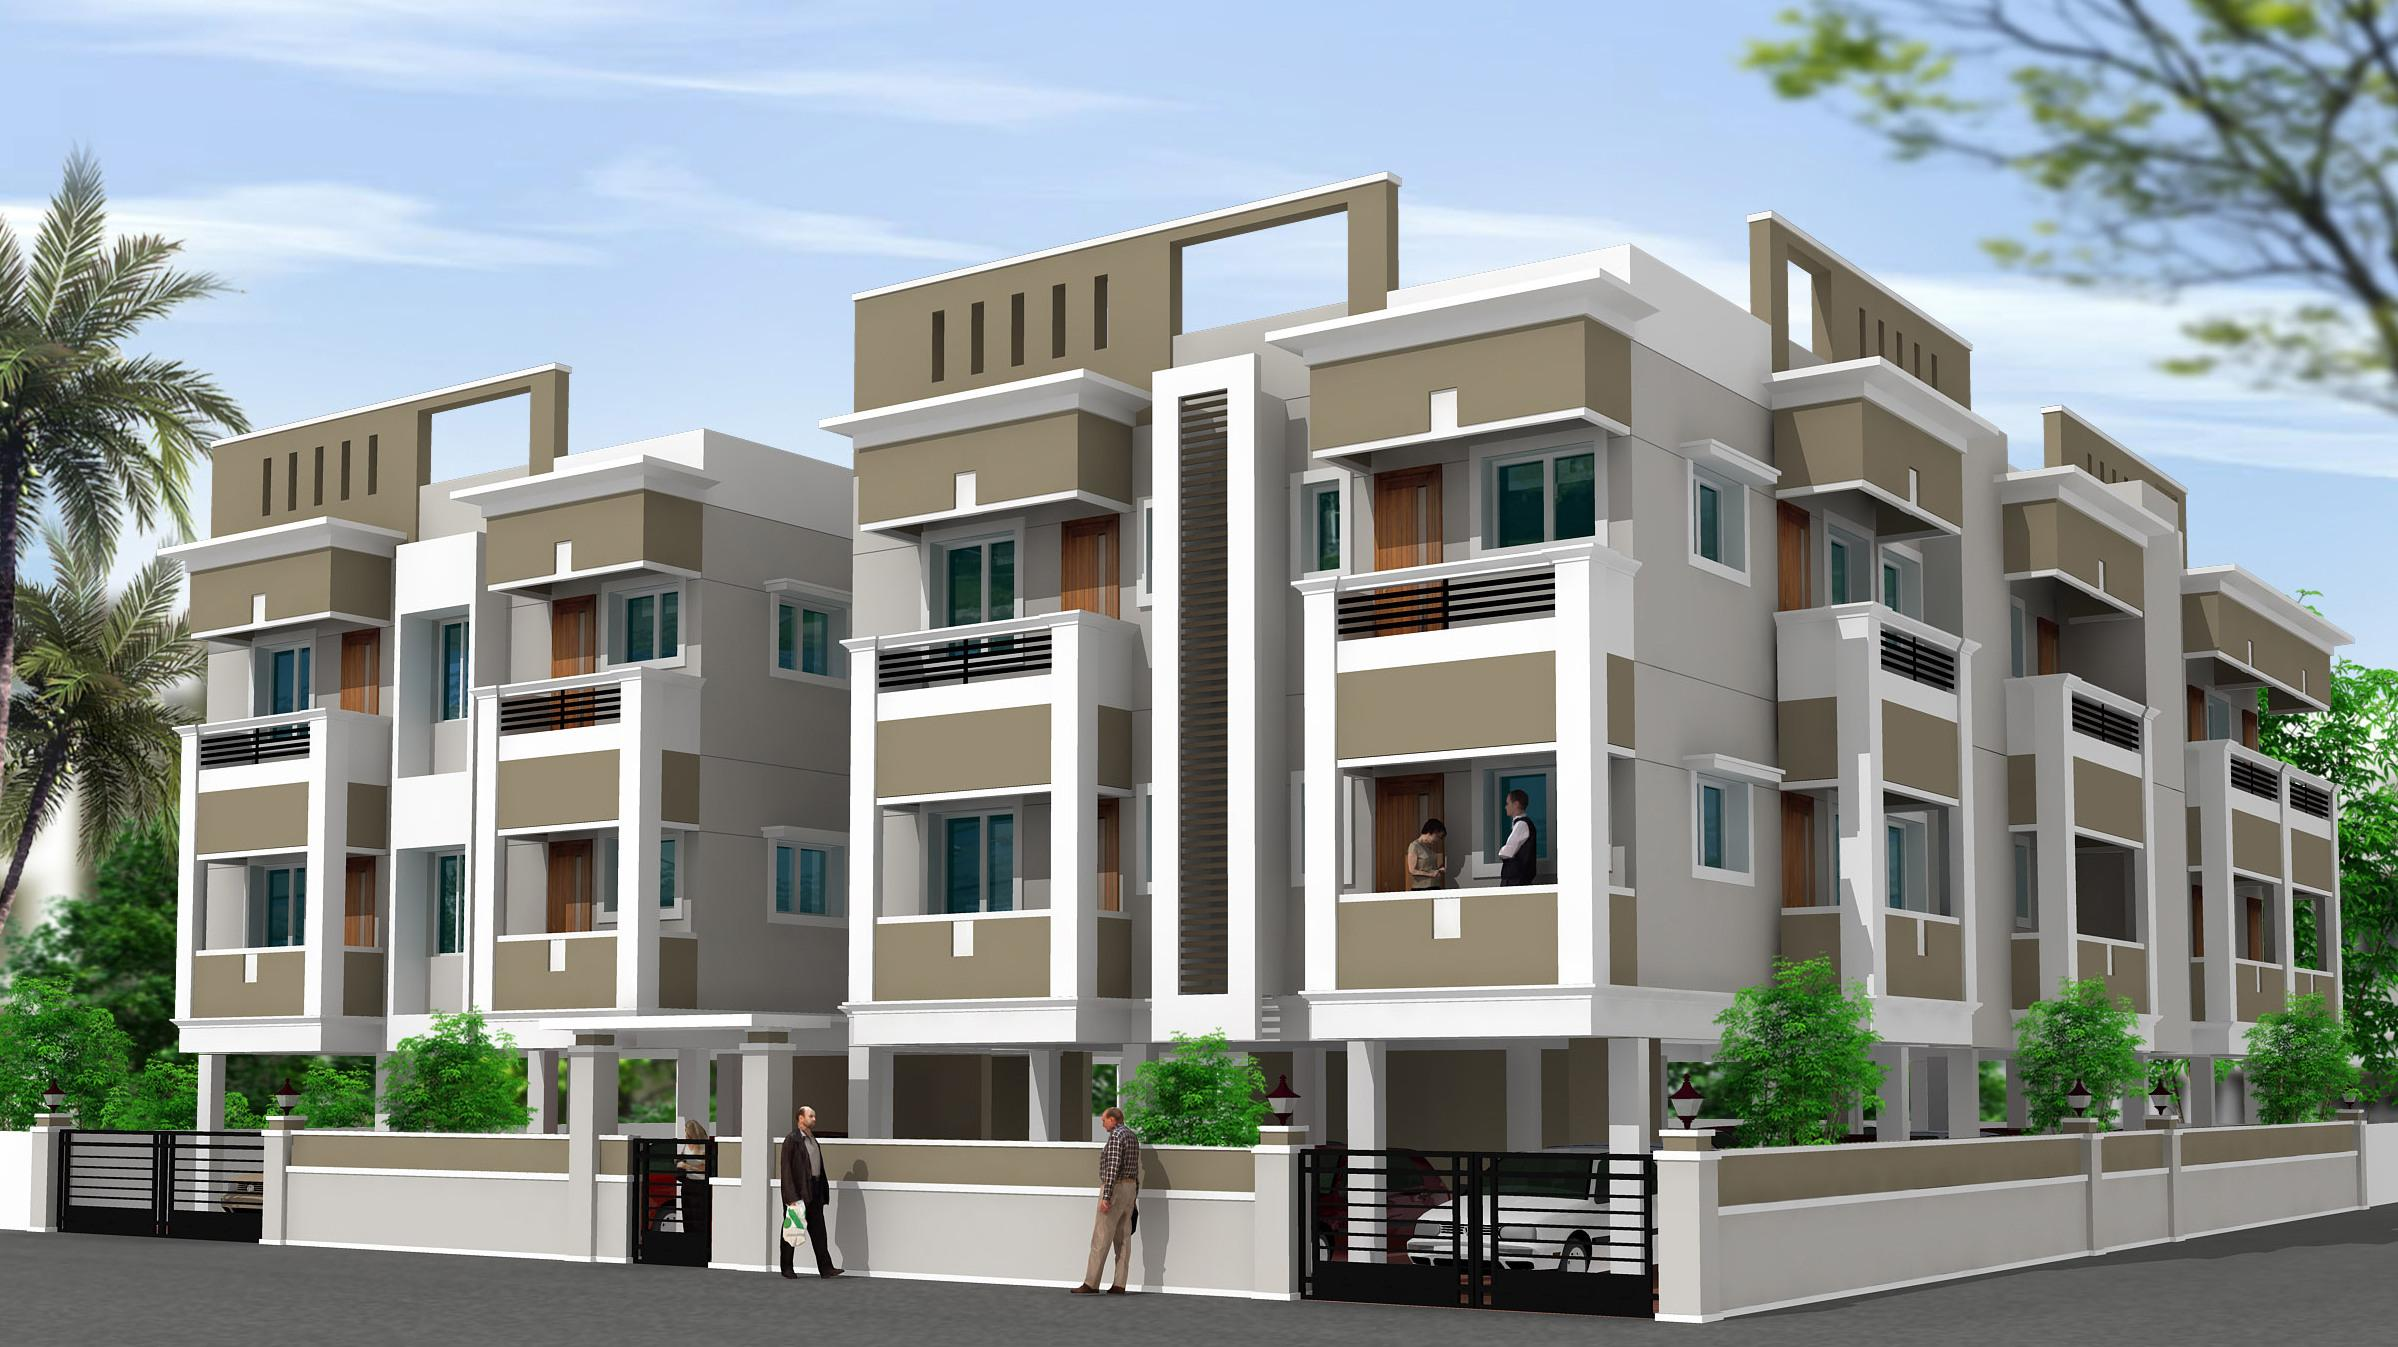 Residential building designs modern house Residential design